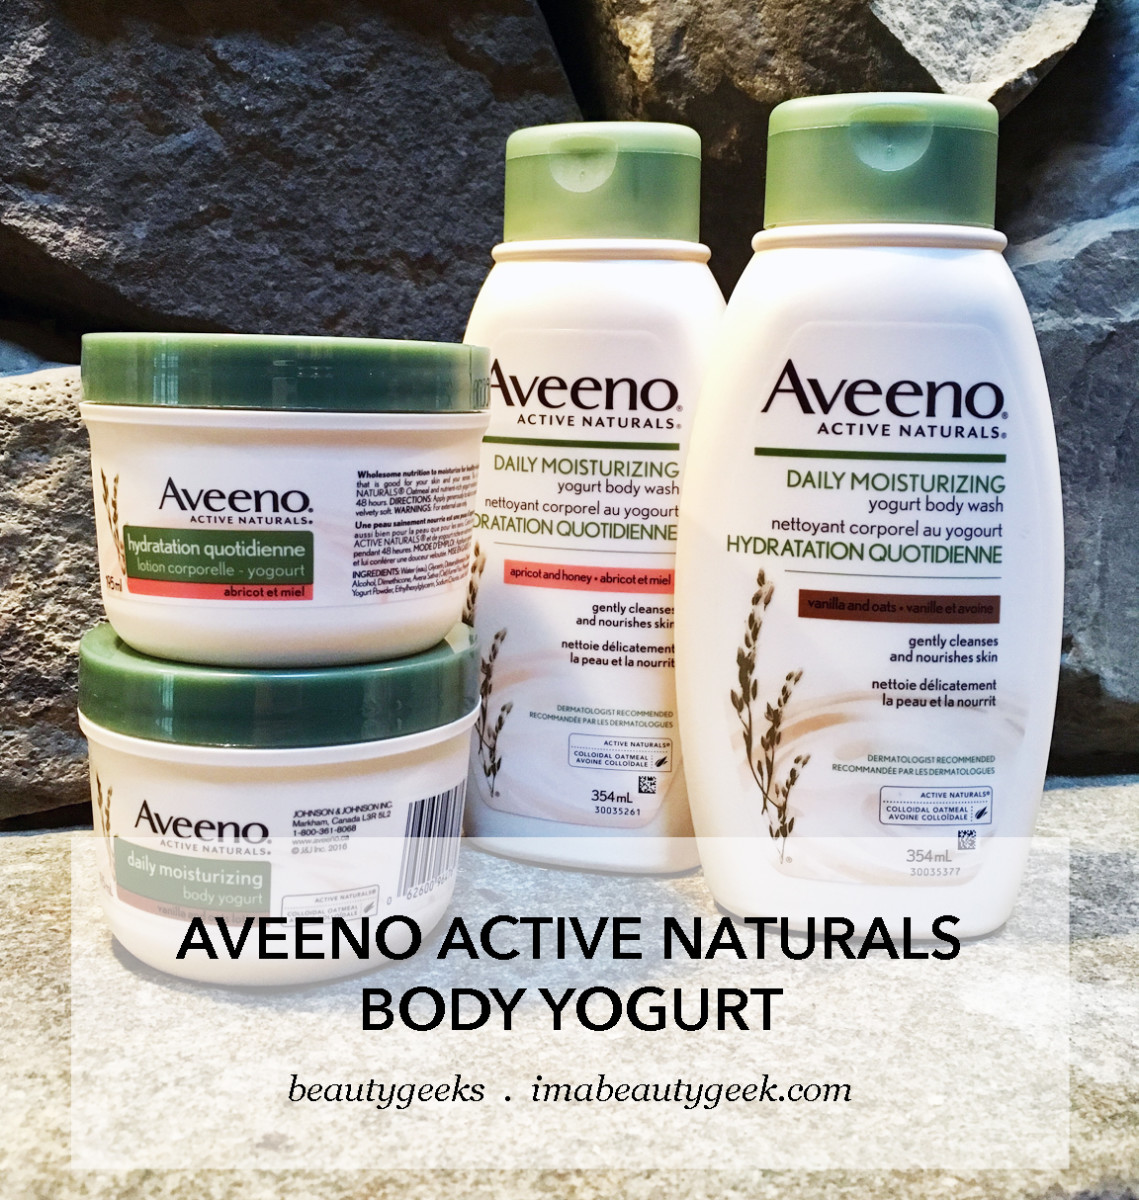 Aveeno Body Yogurt washes and lotions: check out the science behind the formula claims